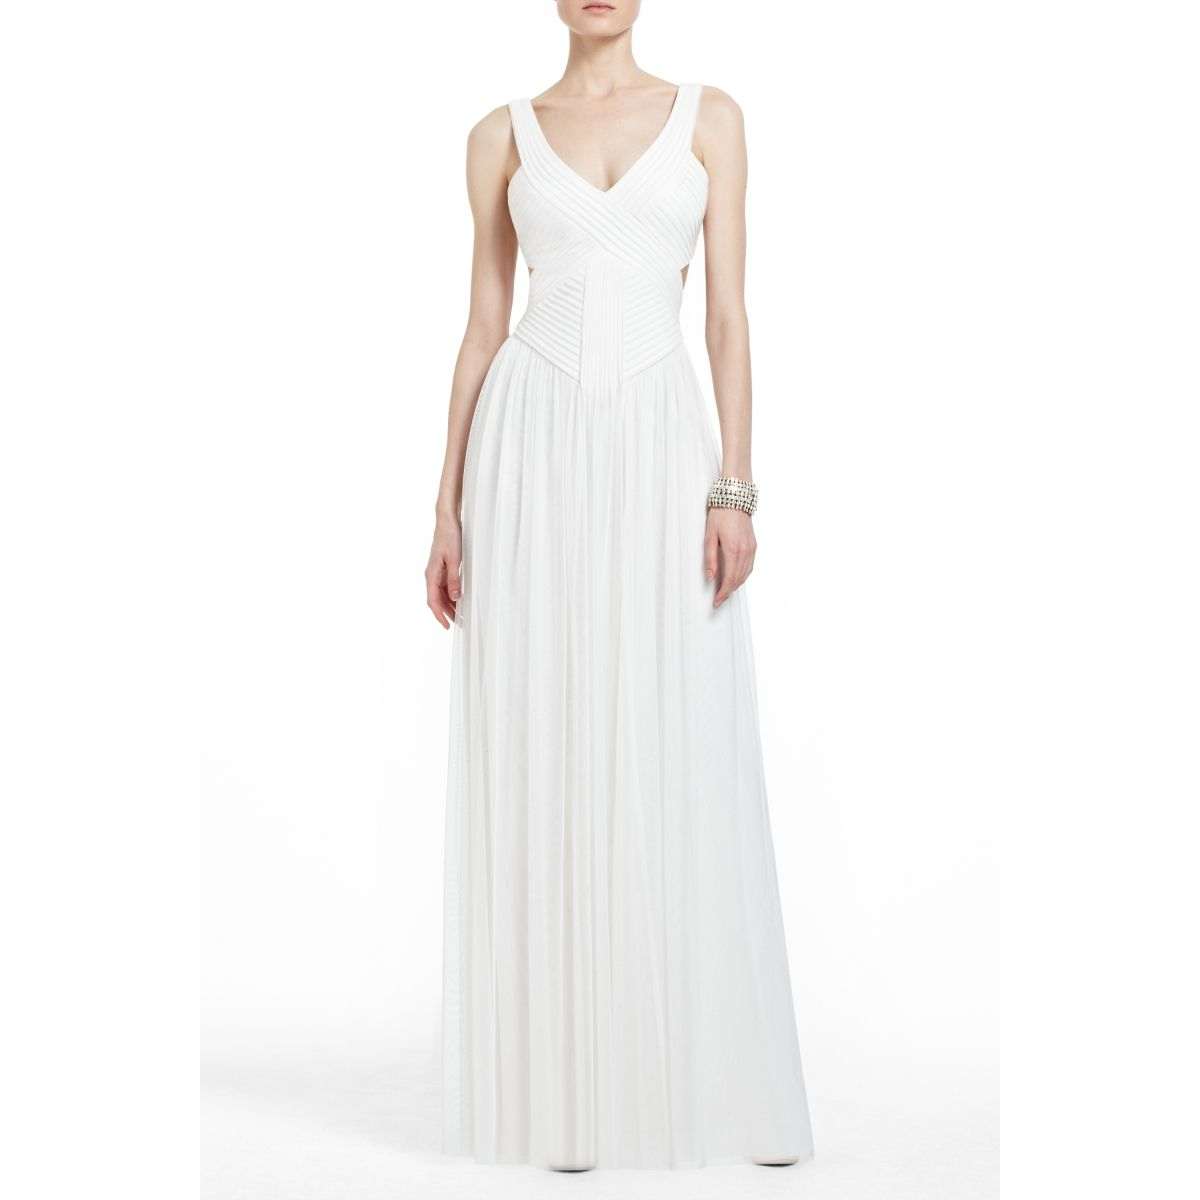 96885d24baa This dress is stunning! BCBGMAXAZRIA - DRESSES  EVENING  MARA DRESS ...